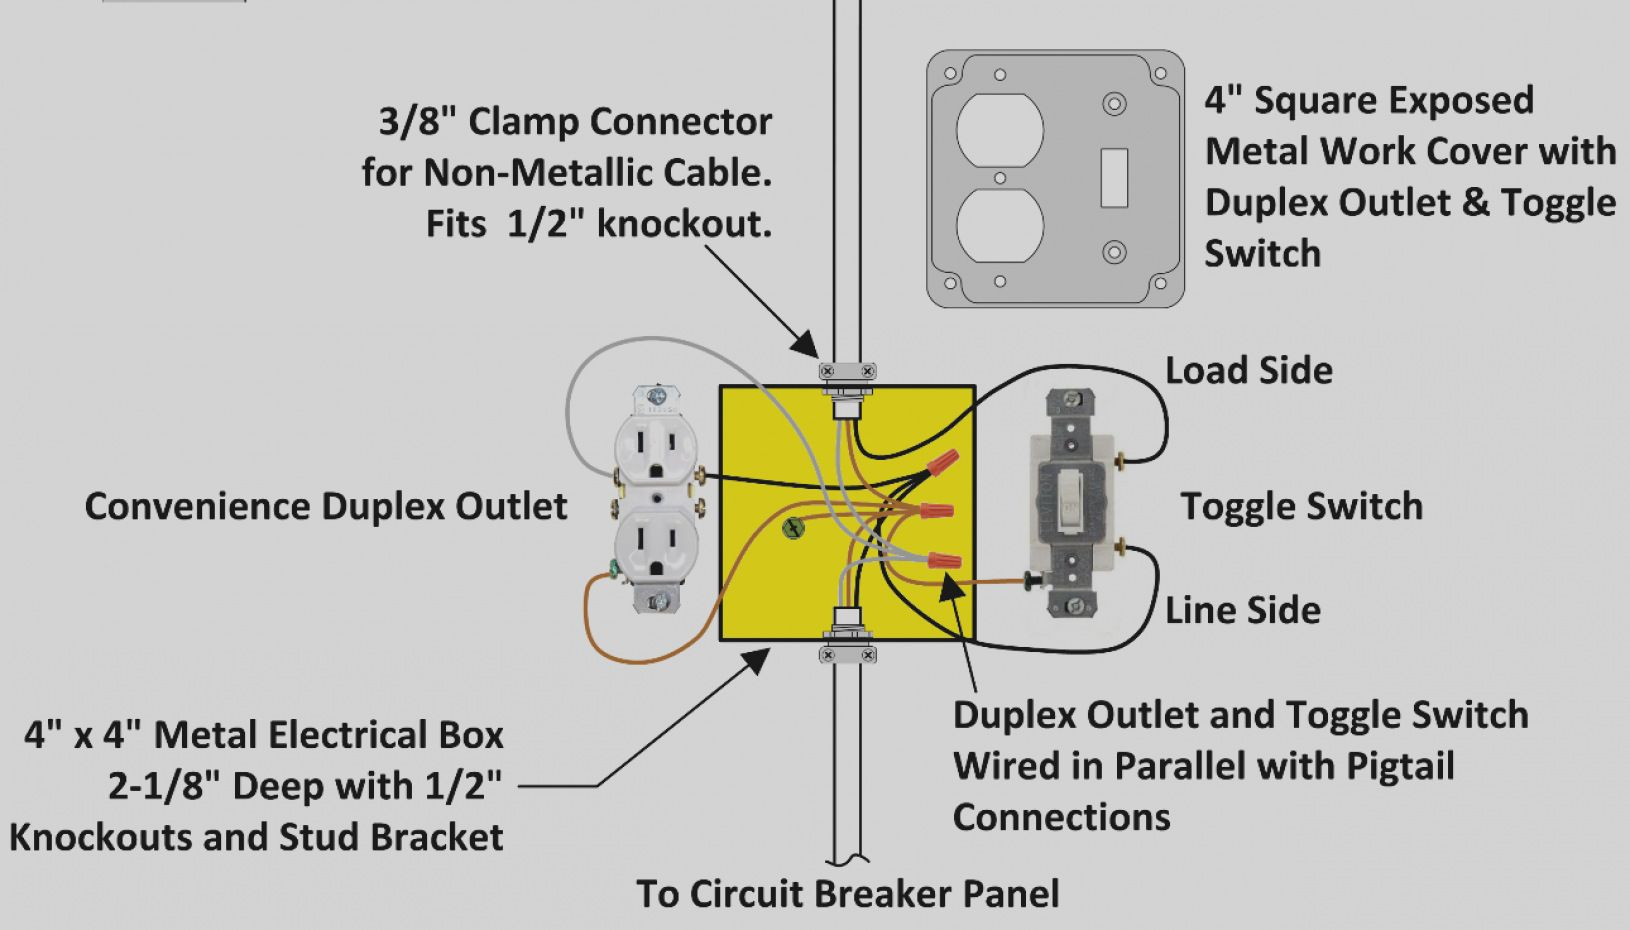 Wonderful Light Switch Outlet Wiring Diagram House Switched ... on light switch piping diagram, light switch cabinet, light switch with receptacle, light switch cover, wall light switch diagram, dimmer switch installation diagram, circuit diagram, light switch timer, light switch power diagram, light switch installation, electrical outlets diagram,